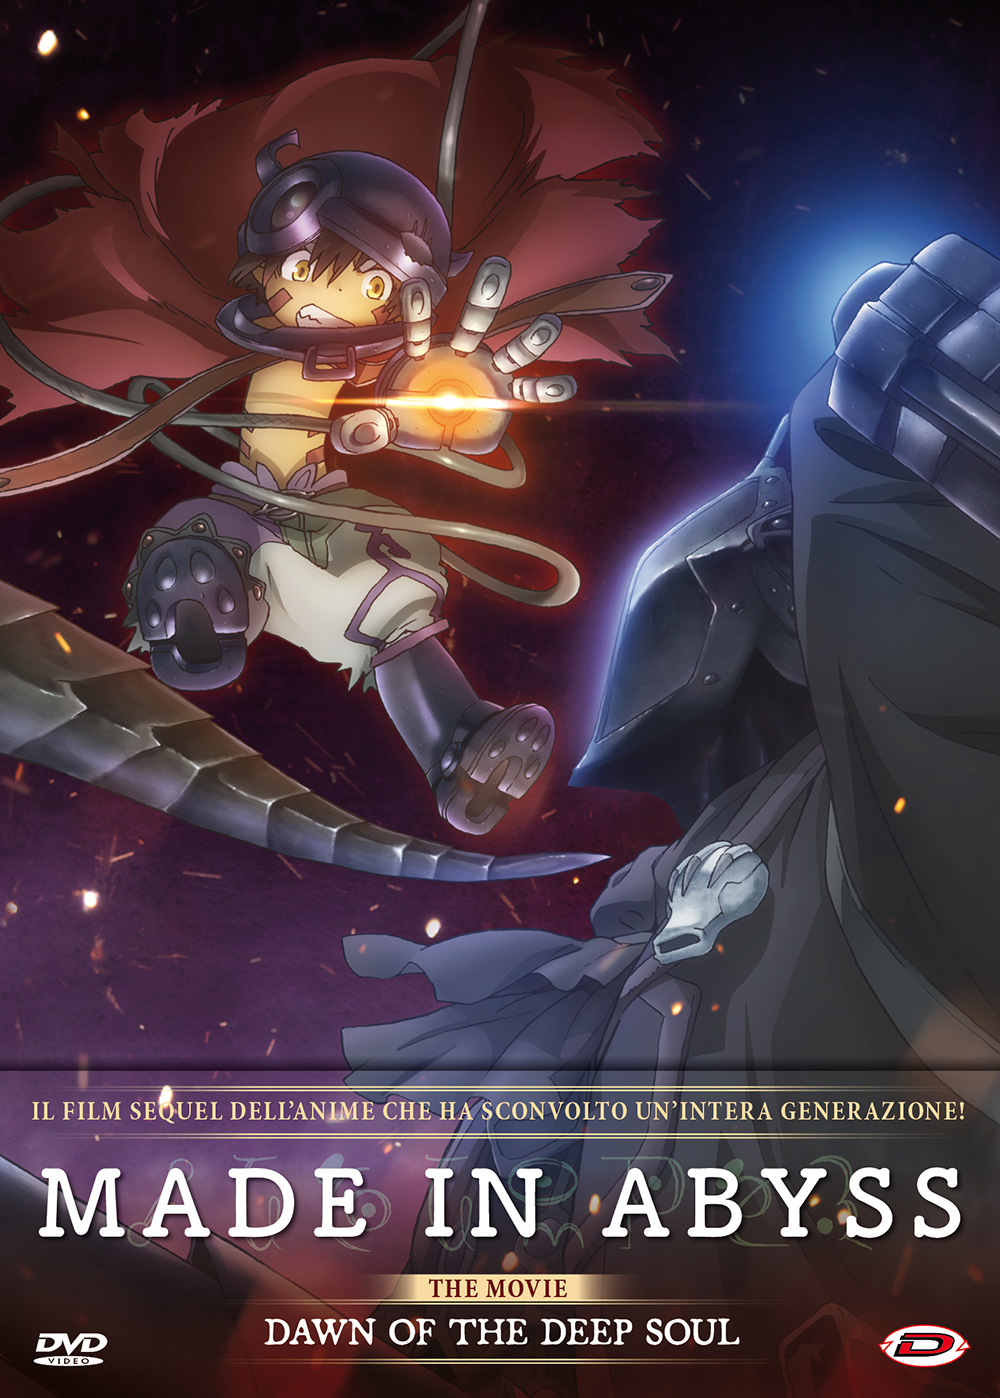 MADE IN ABYSS THE MOVIE: DAWN OF THE DEEP SOUL (FIRST PRESS) (DV